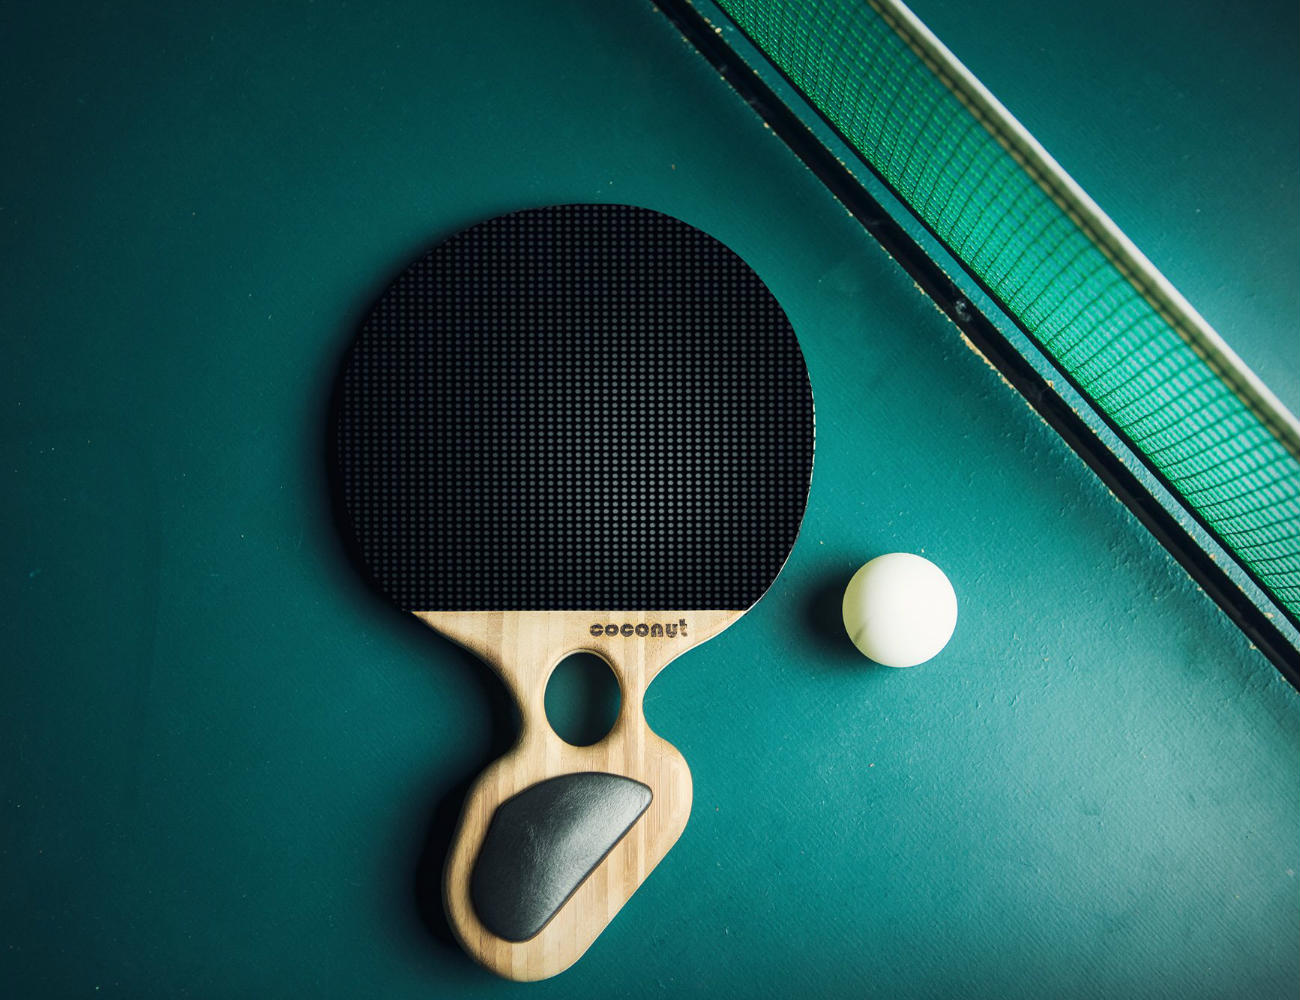 coconut-paddle-for-table-tennis-01